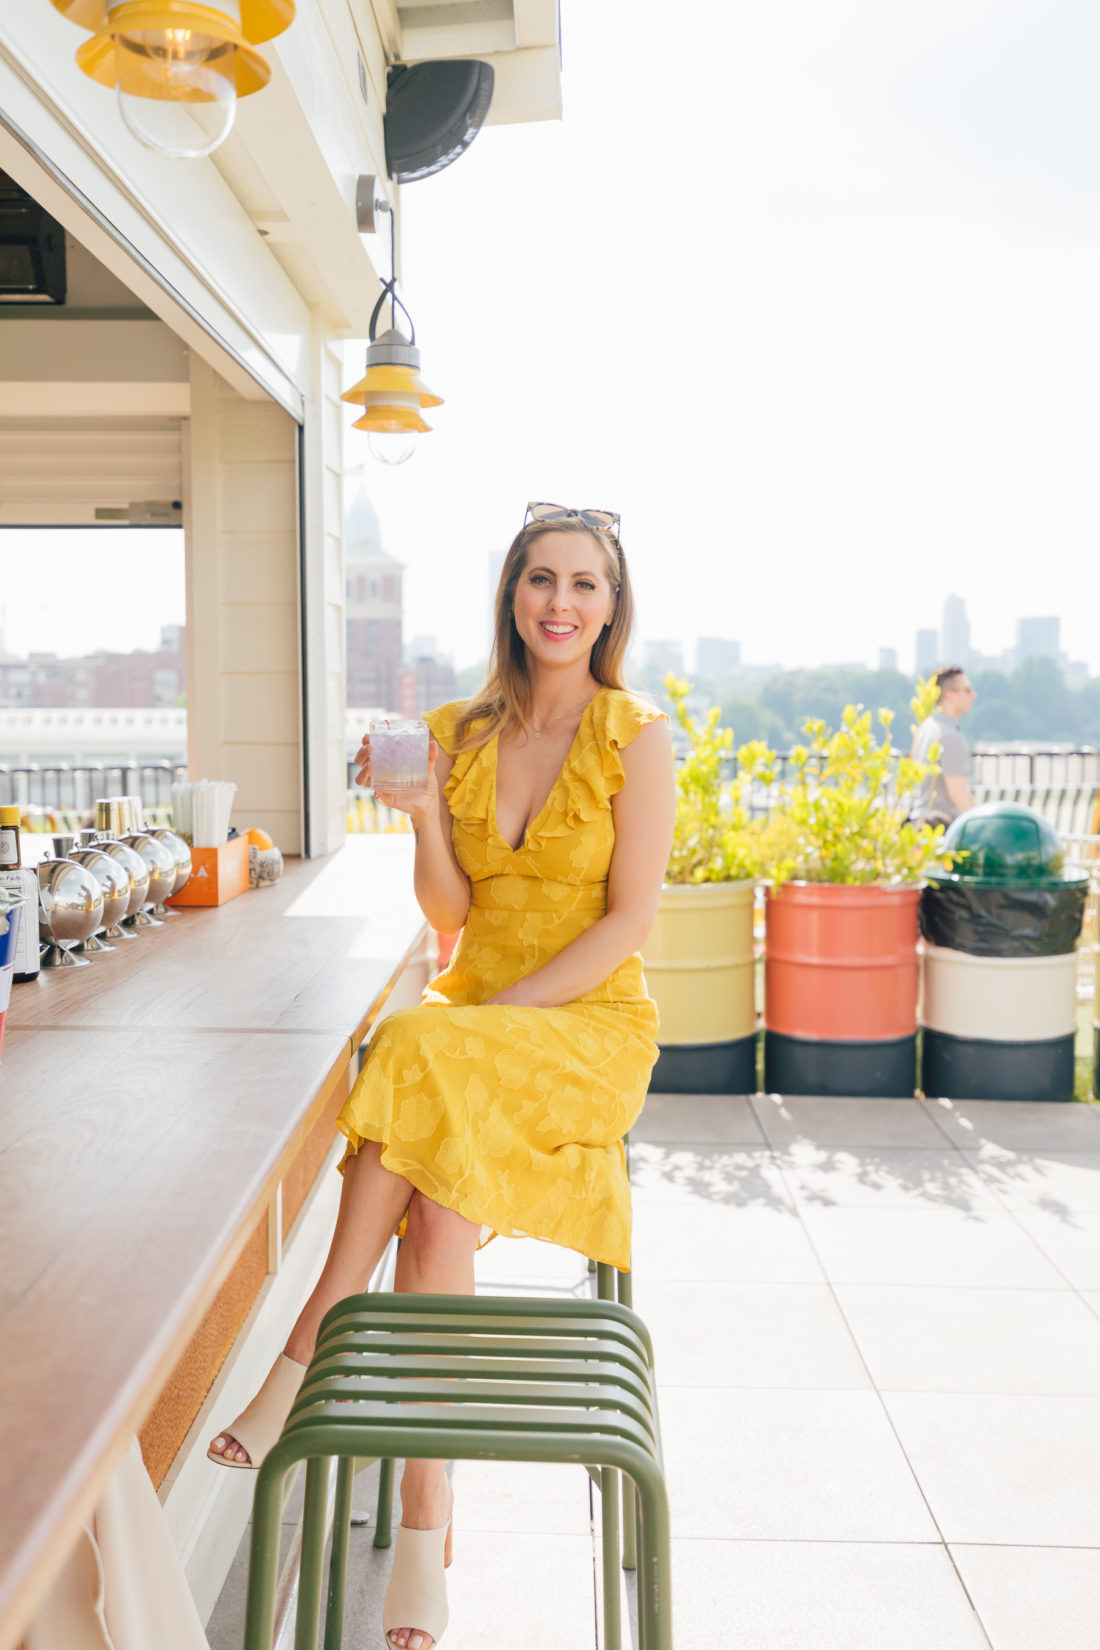 Eva Amurri Martino wears a bright yellow sress and sips on a cocktail at an outdoor bar